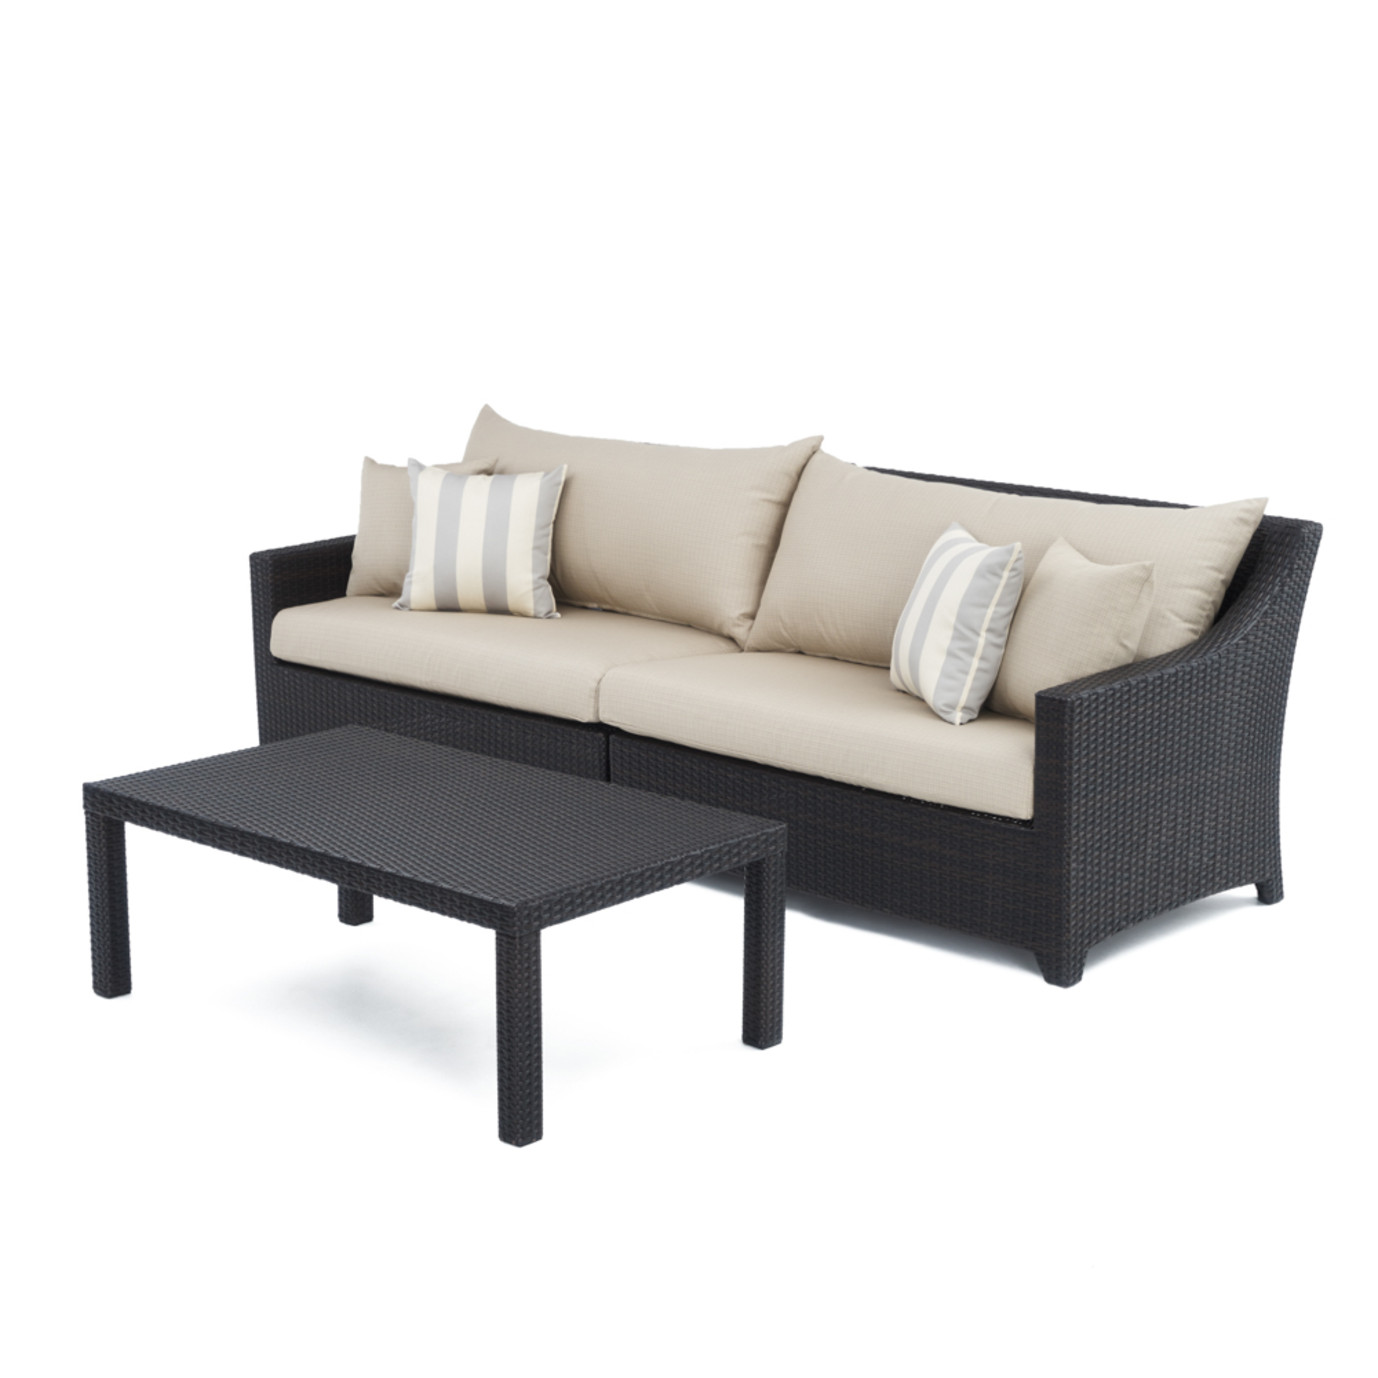 Deco™ Sofa with Coffee Table - Slate Grey